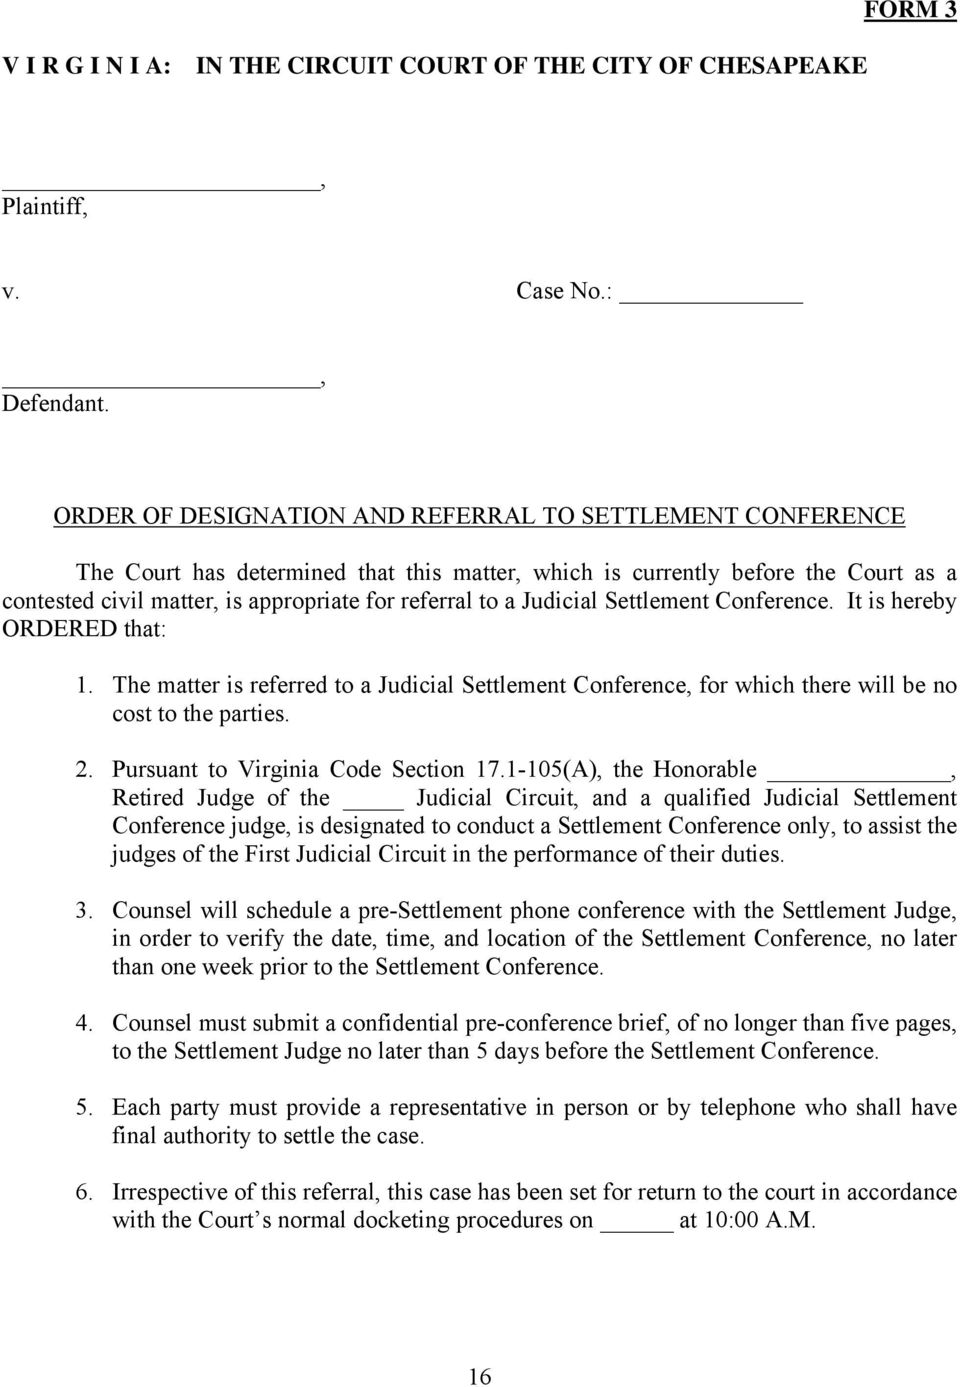 form 17a settlement conference brief pdf